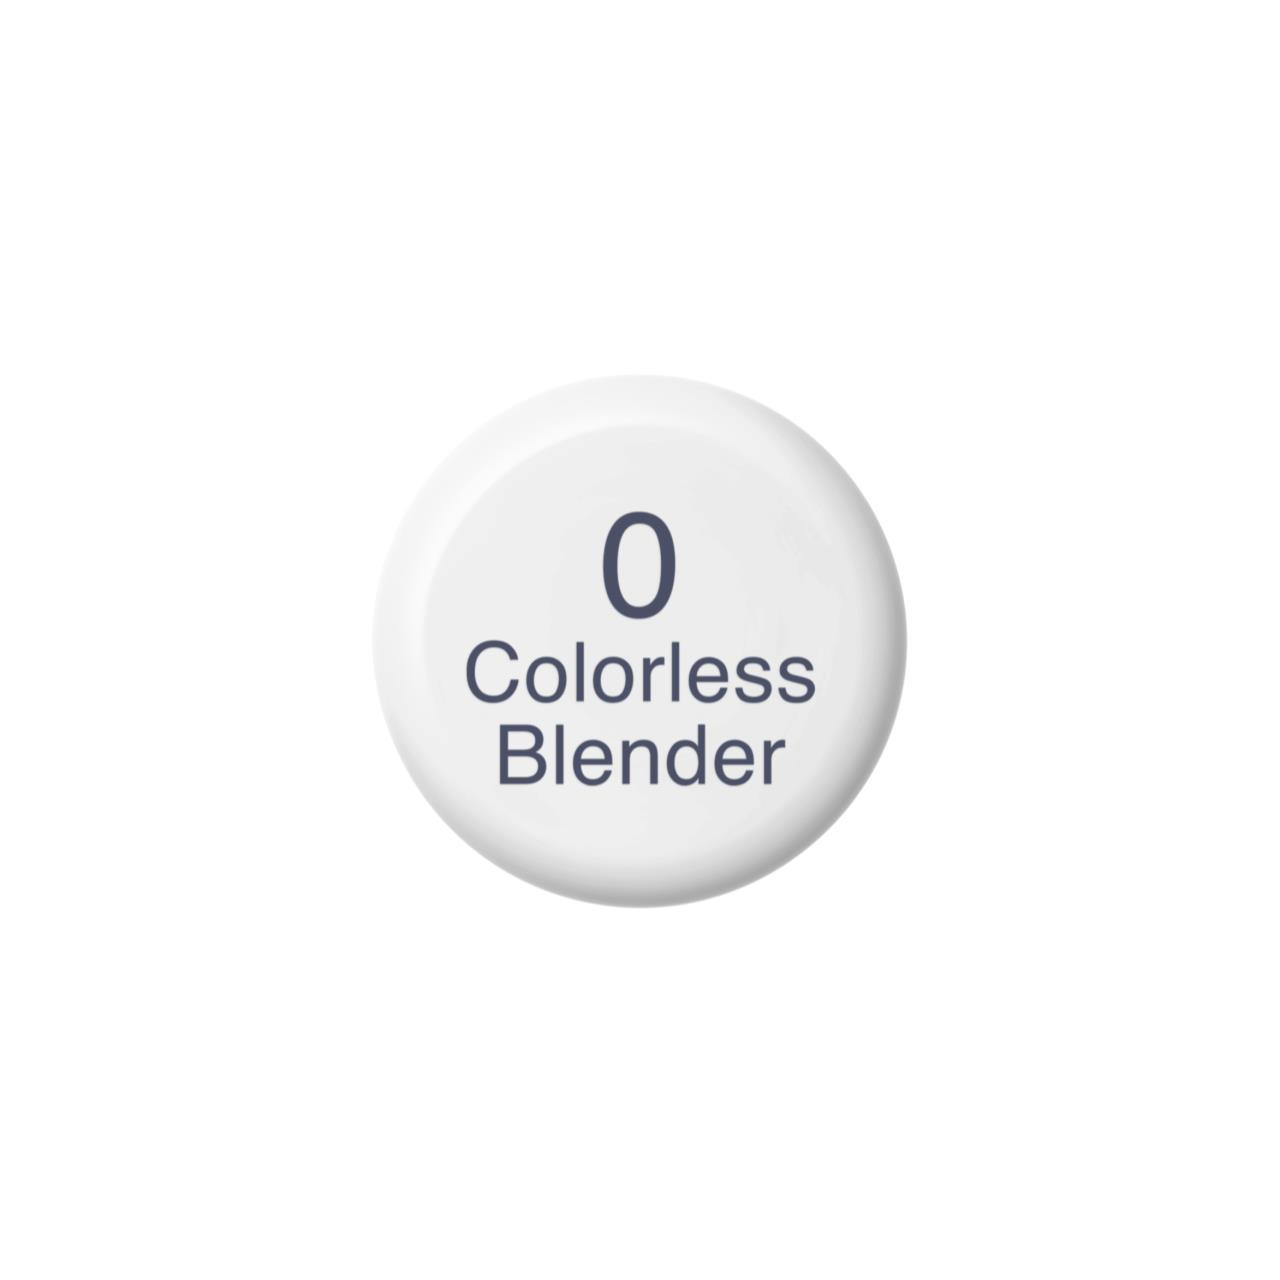 0 Colorless Blender, Copic Ink - 4511338055779